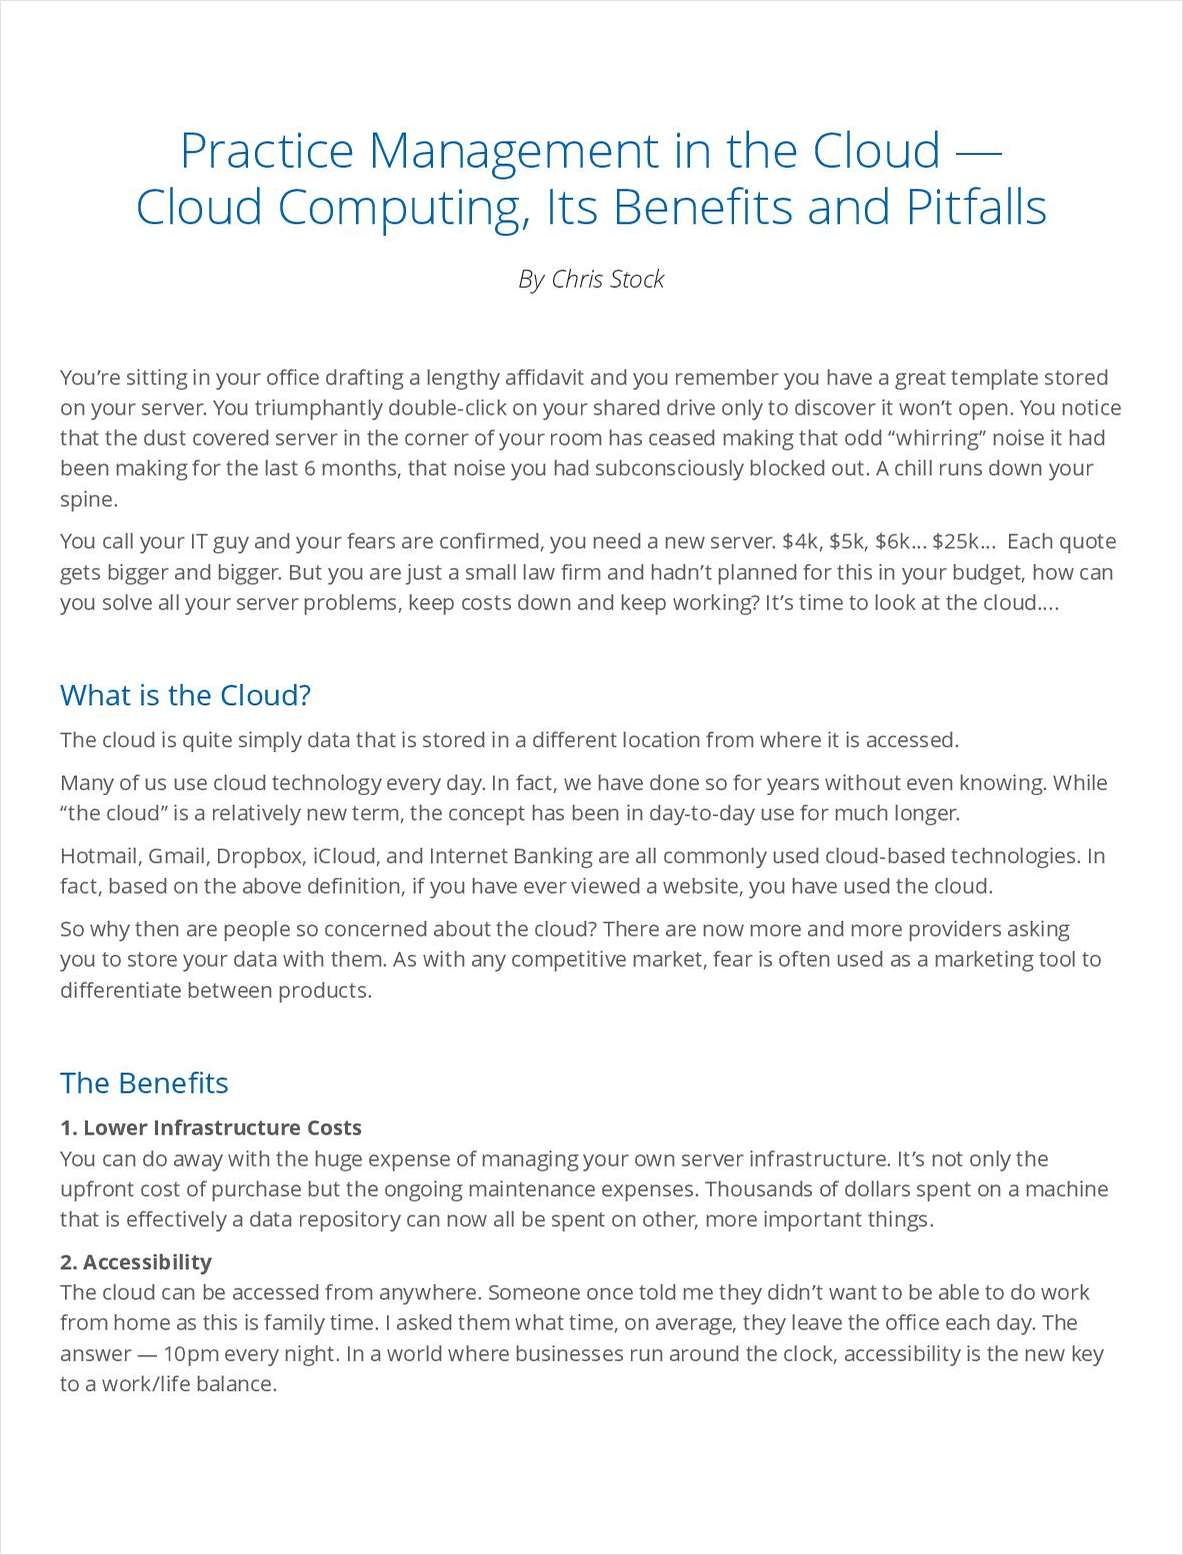 Practice Management in the Cloud -- Cloud Computing, Its Benefits and Pitfalls